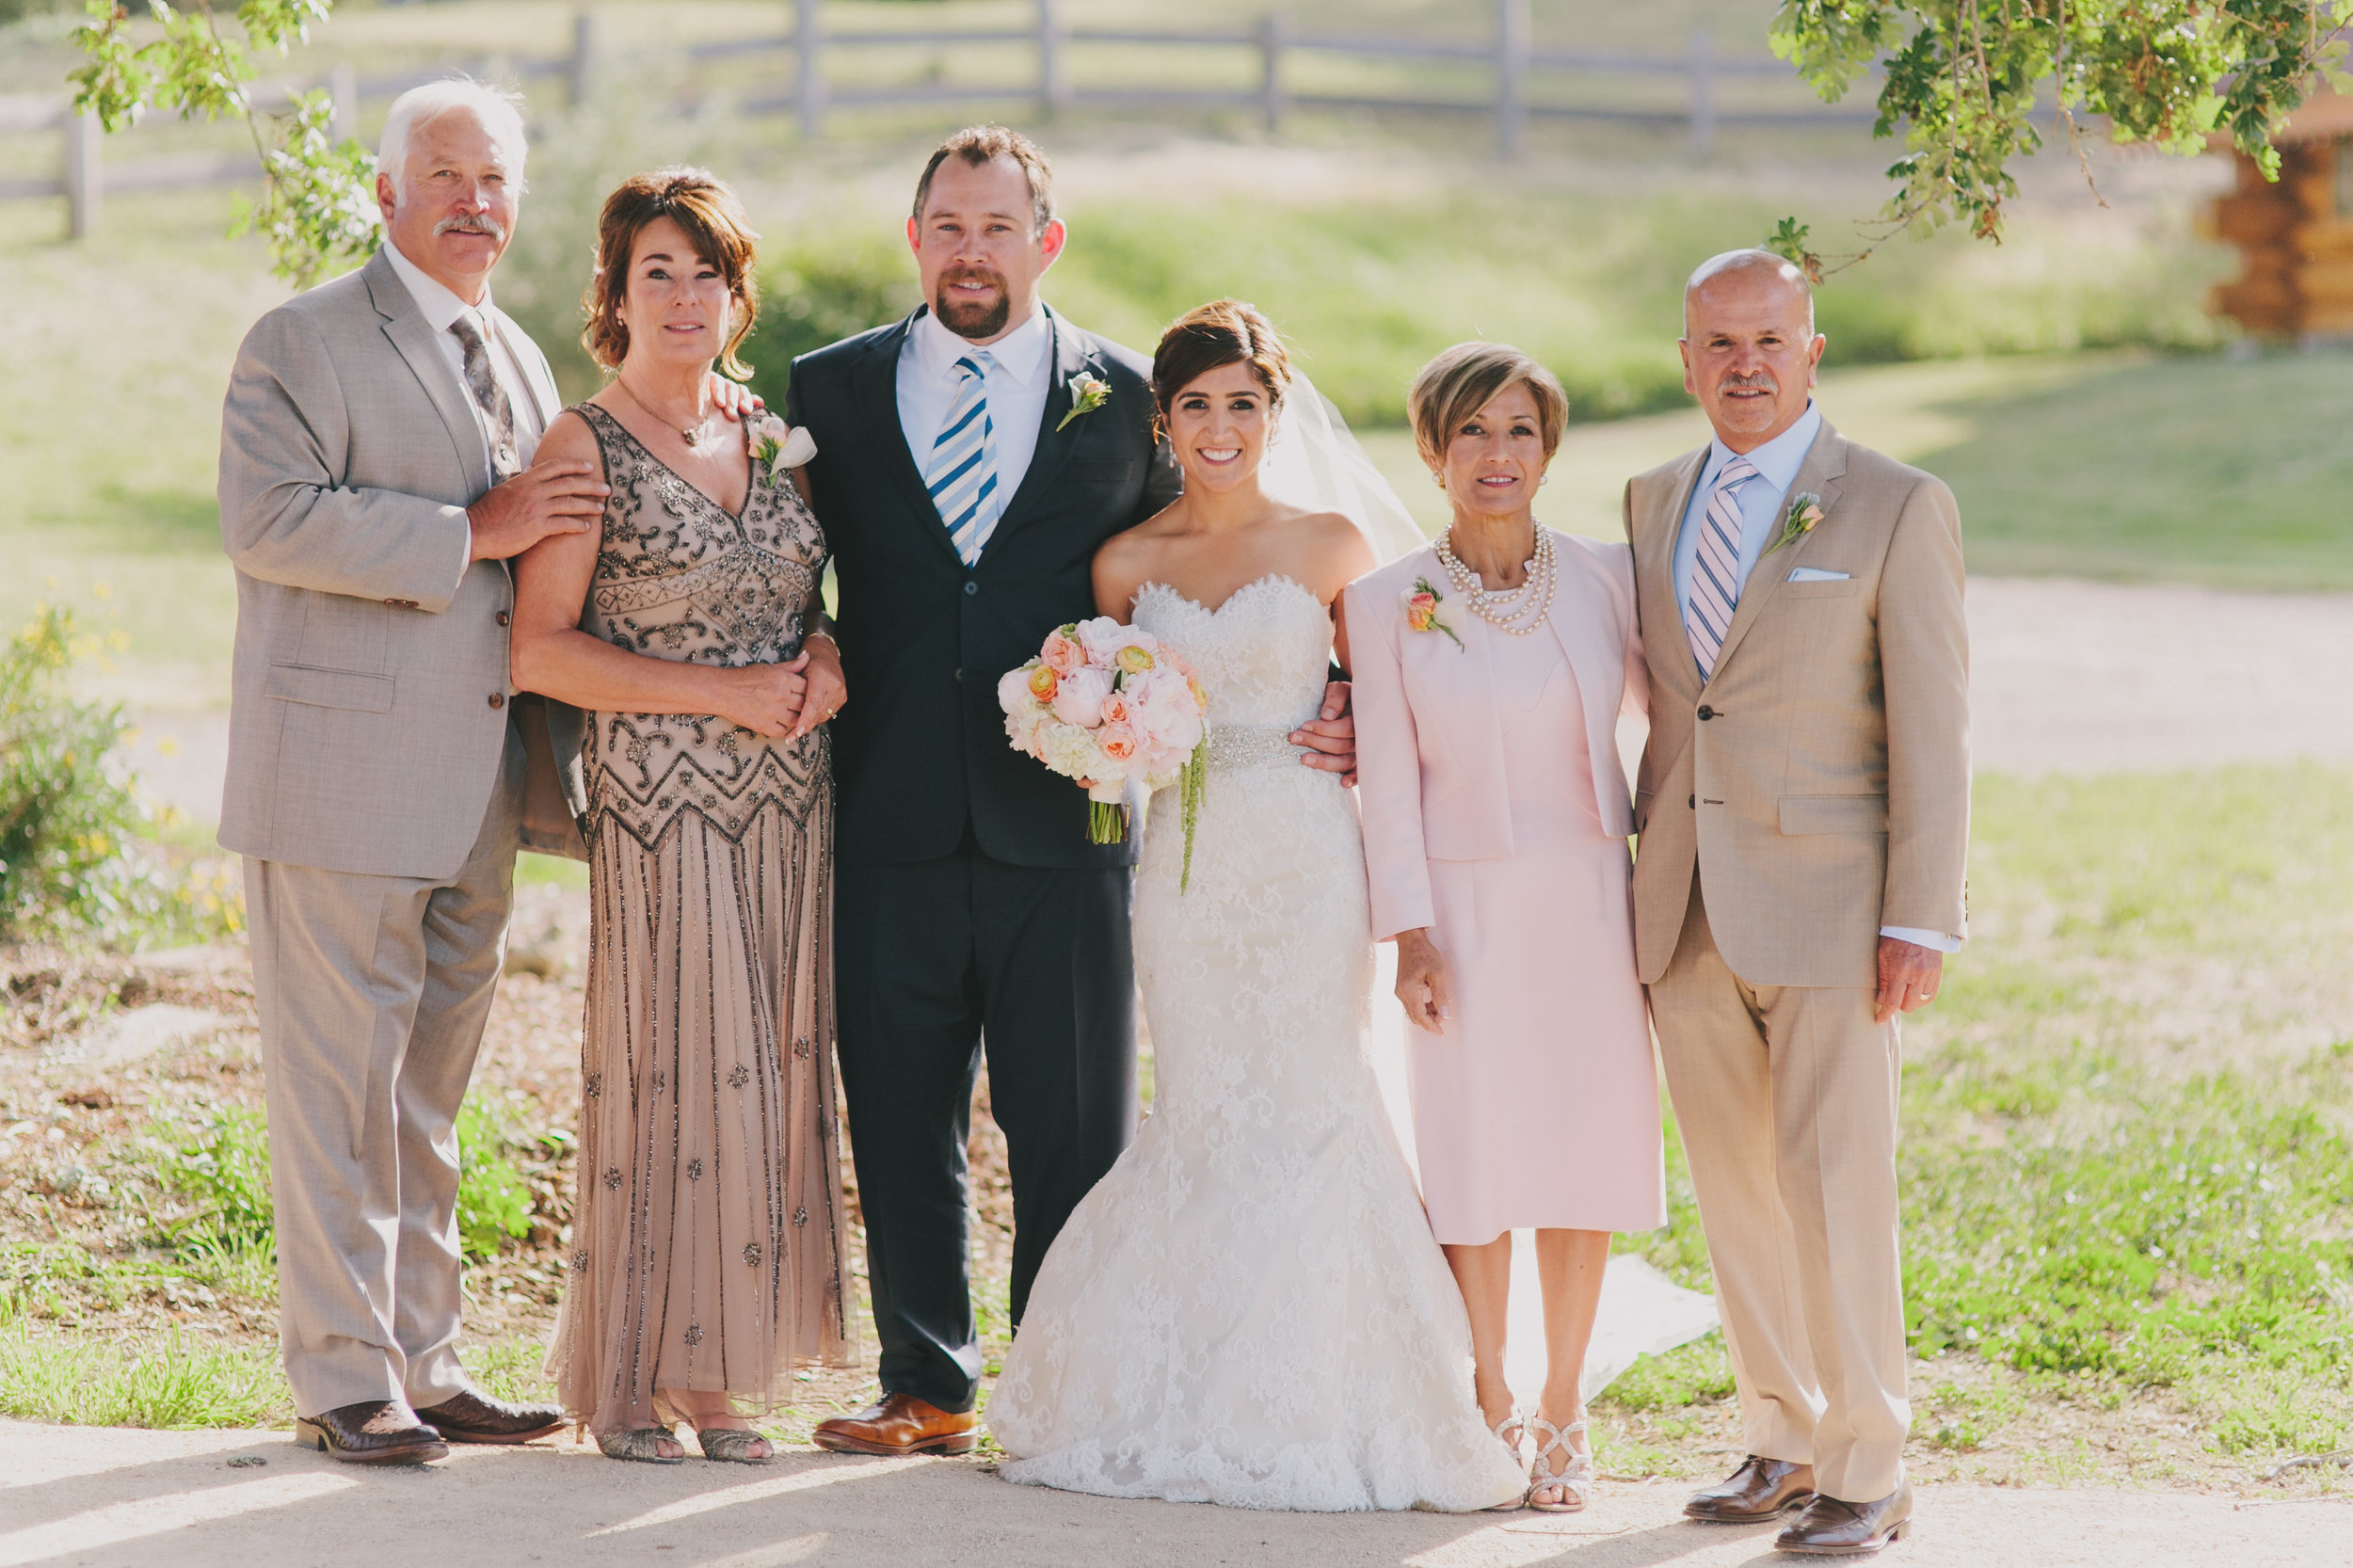 Carson Bianca Wedding by Jake and Necia Photography-05 groupformals-0057.jpg